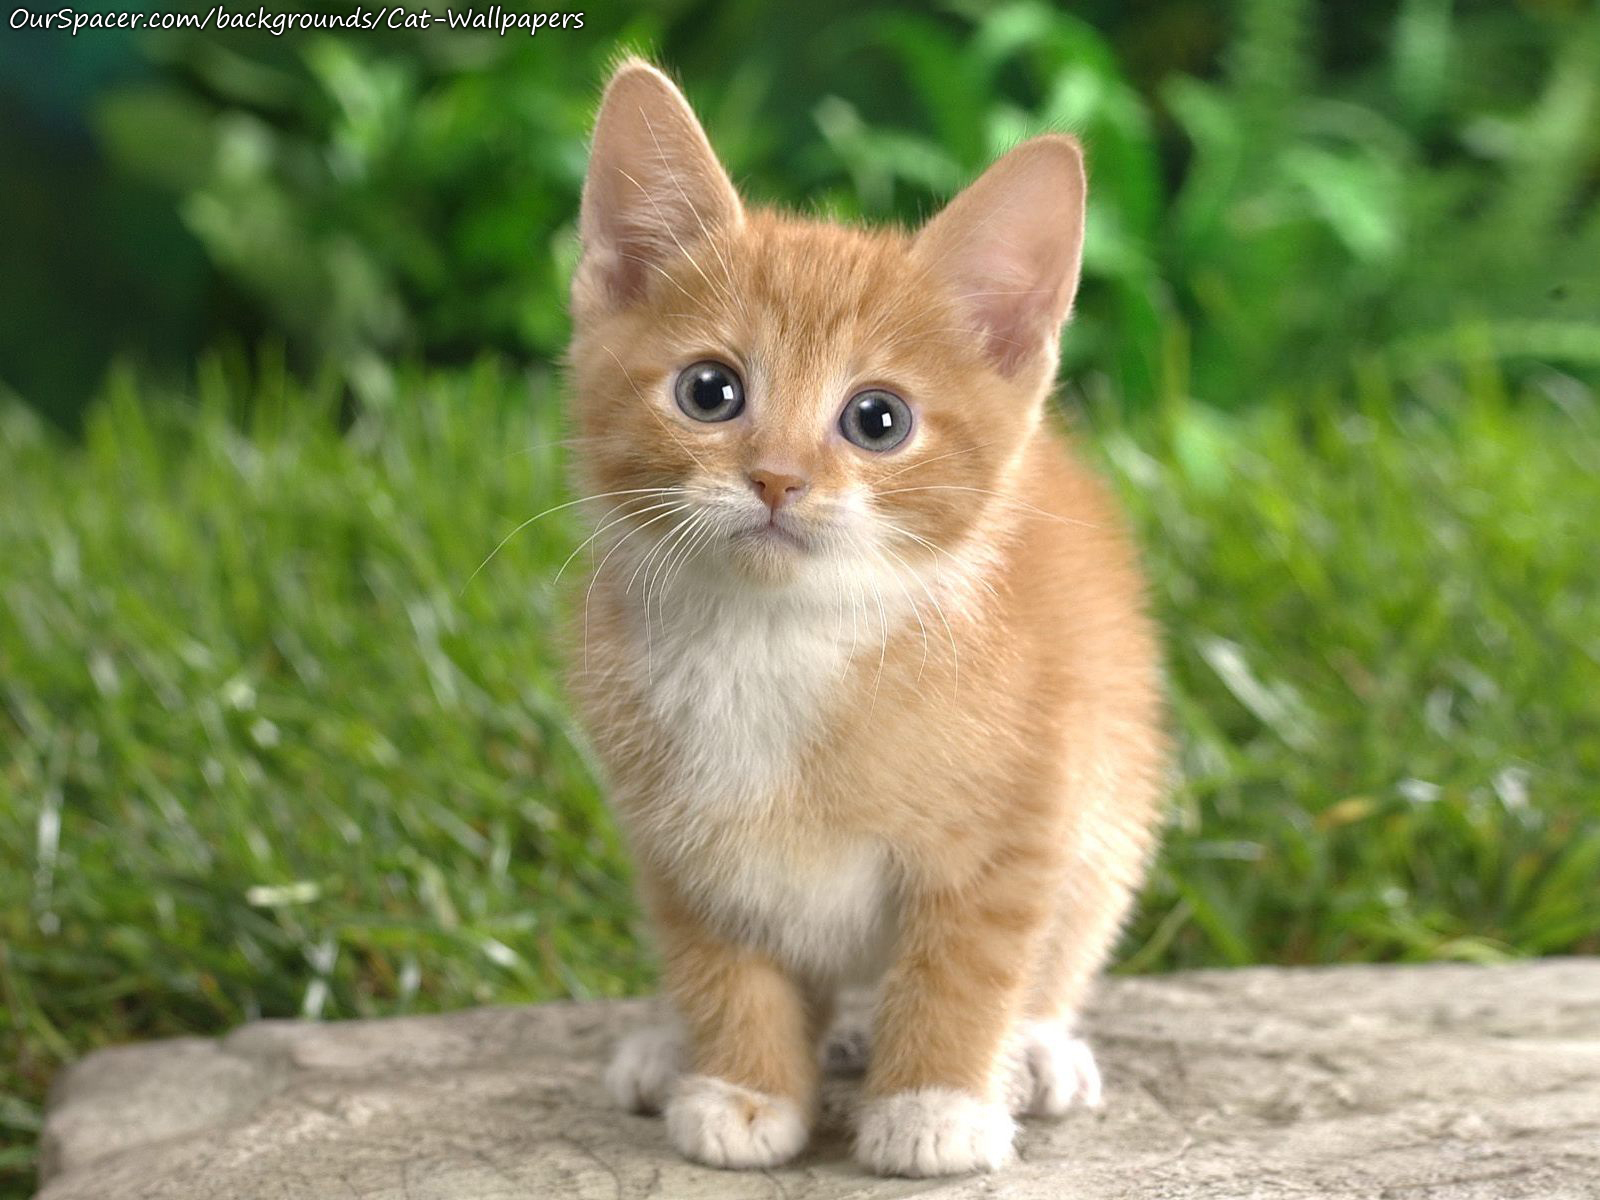 Adorable cute cat staring into the camera wallpapers for myspace, twitter, and hi5 backgrounds